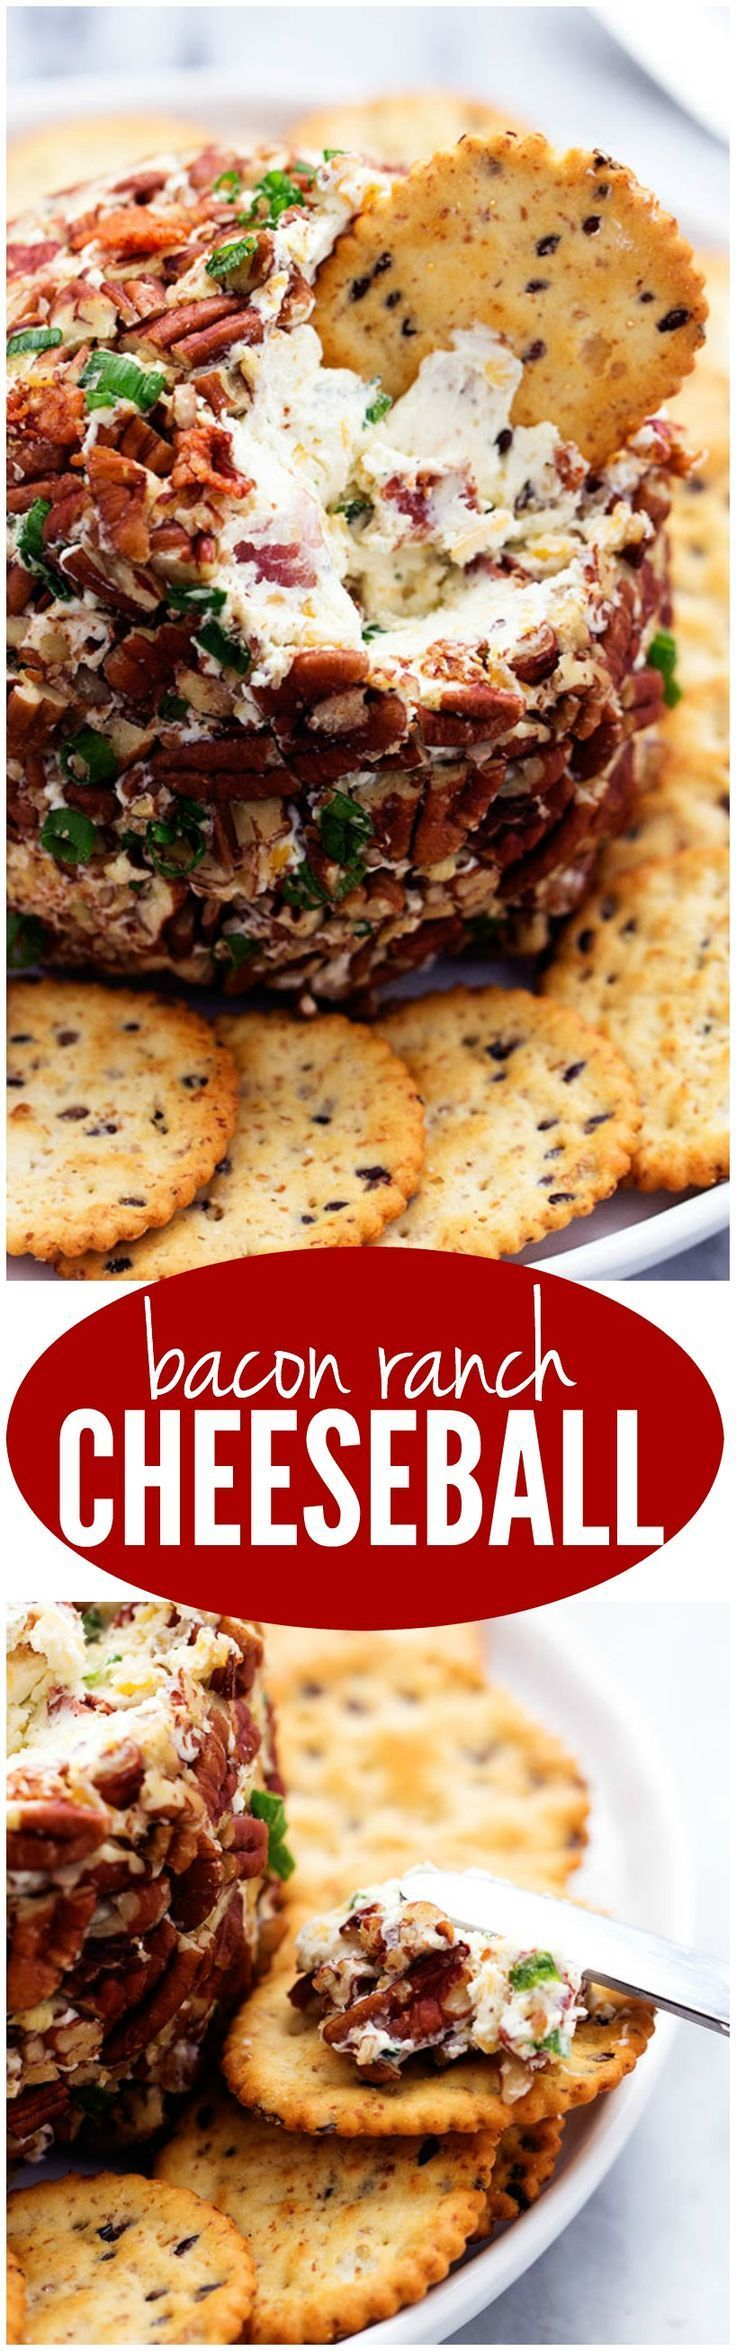 Bacon, ranch flavor, green onions, cheddar cheese, and crunchy pecans come together in this amazing cheese ball! It is my absolute favorite and most popular cheeseball on the site and will be a hit wherever it goes!